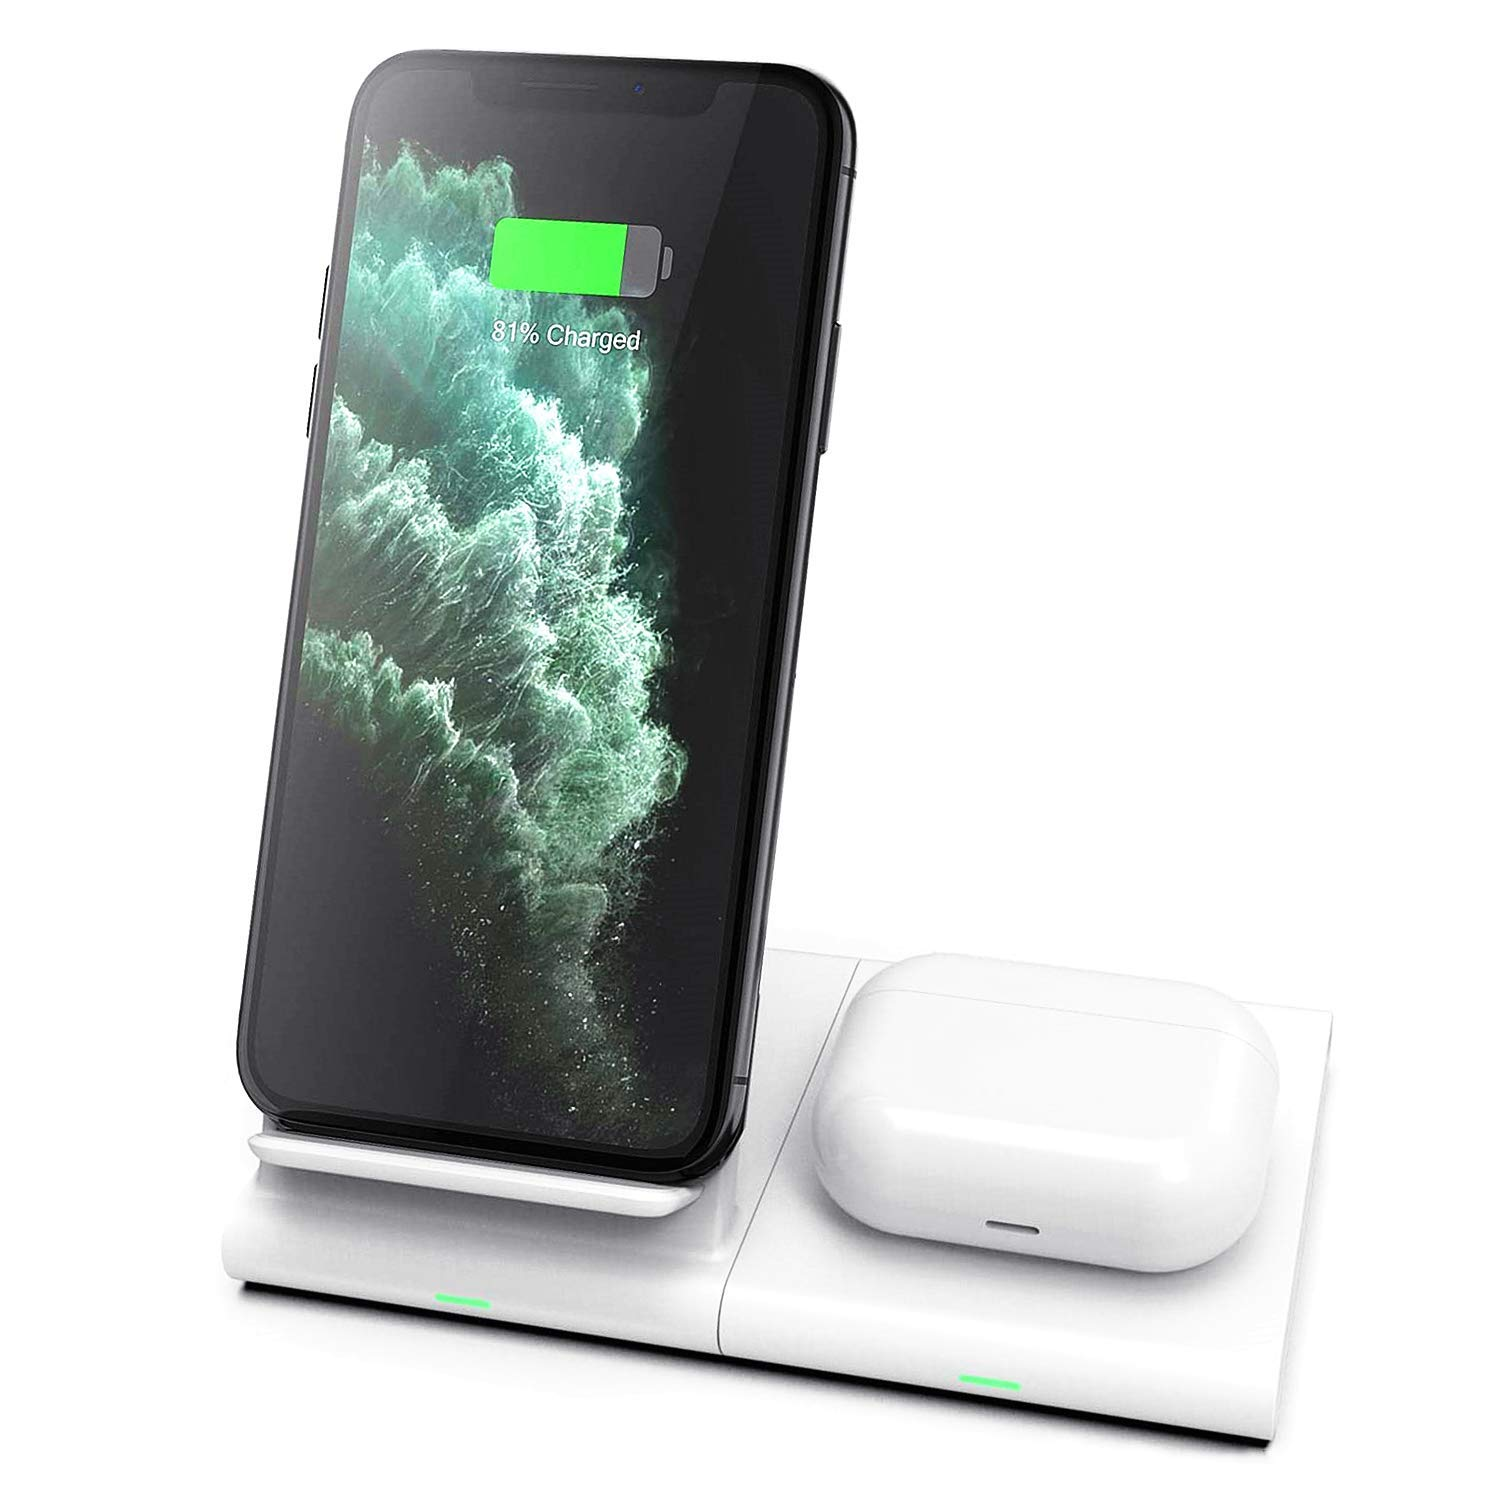 Hoidokly Dual 2 in 1 Wireless Charger Stand Qi 10W Fast Charging Station for Samsung Galaxy S20/S20 ultra/S10/S10e/S9/S8/Note 10/9/8, Galaxy Watch/Buds,iPhone 11/Pro Max/XR/XS/X/8/8 Plus/Airpods Pro